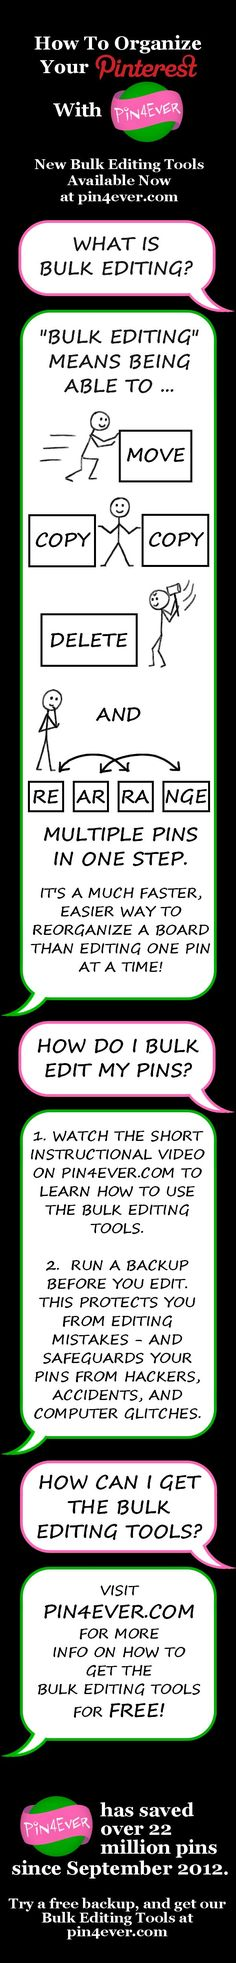 Organize your Pinterest the fast and easy way with Pin4Ever. Pin4Ever has saved more than 28 million pins since September 2012. Visit Pin4Ever.com to learn more, and try all our features free for a week!